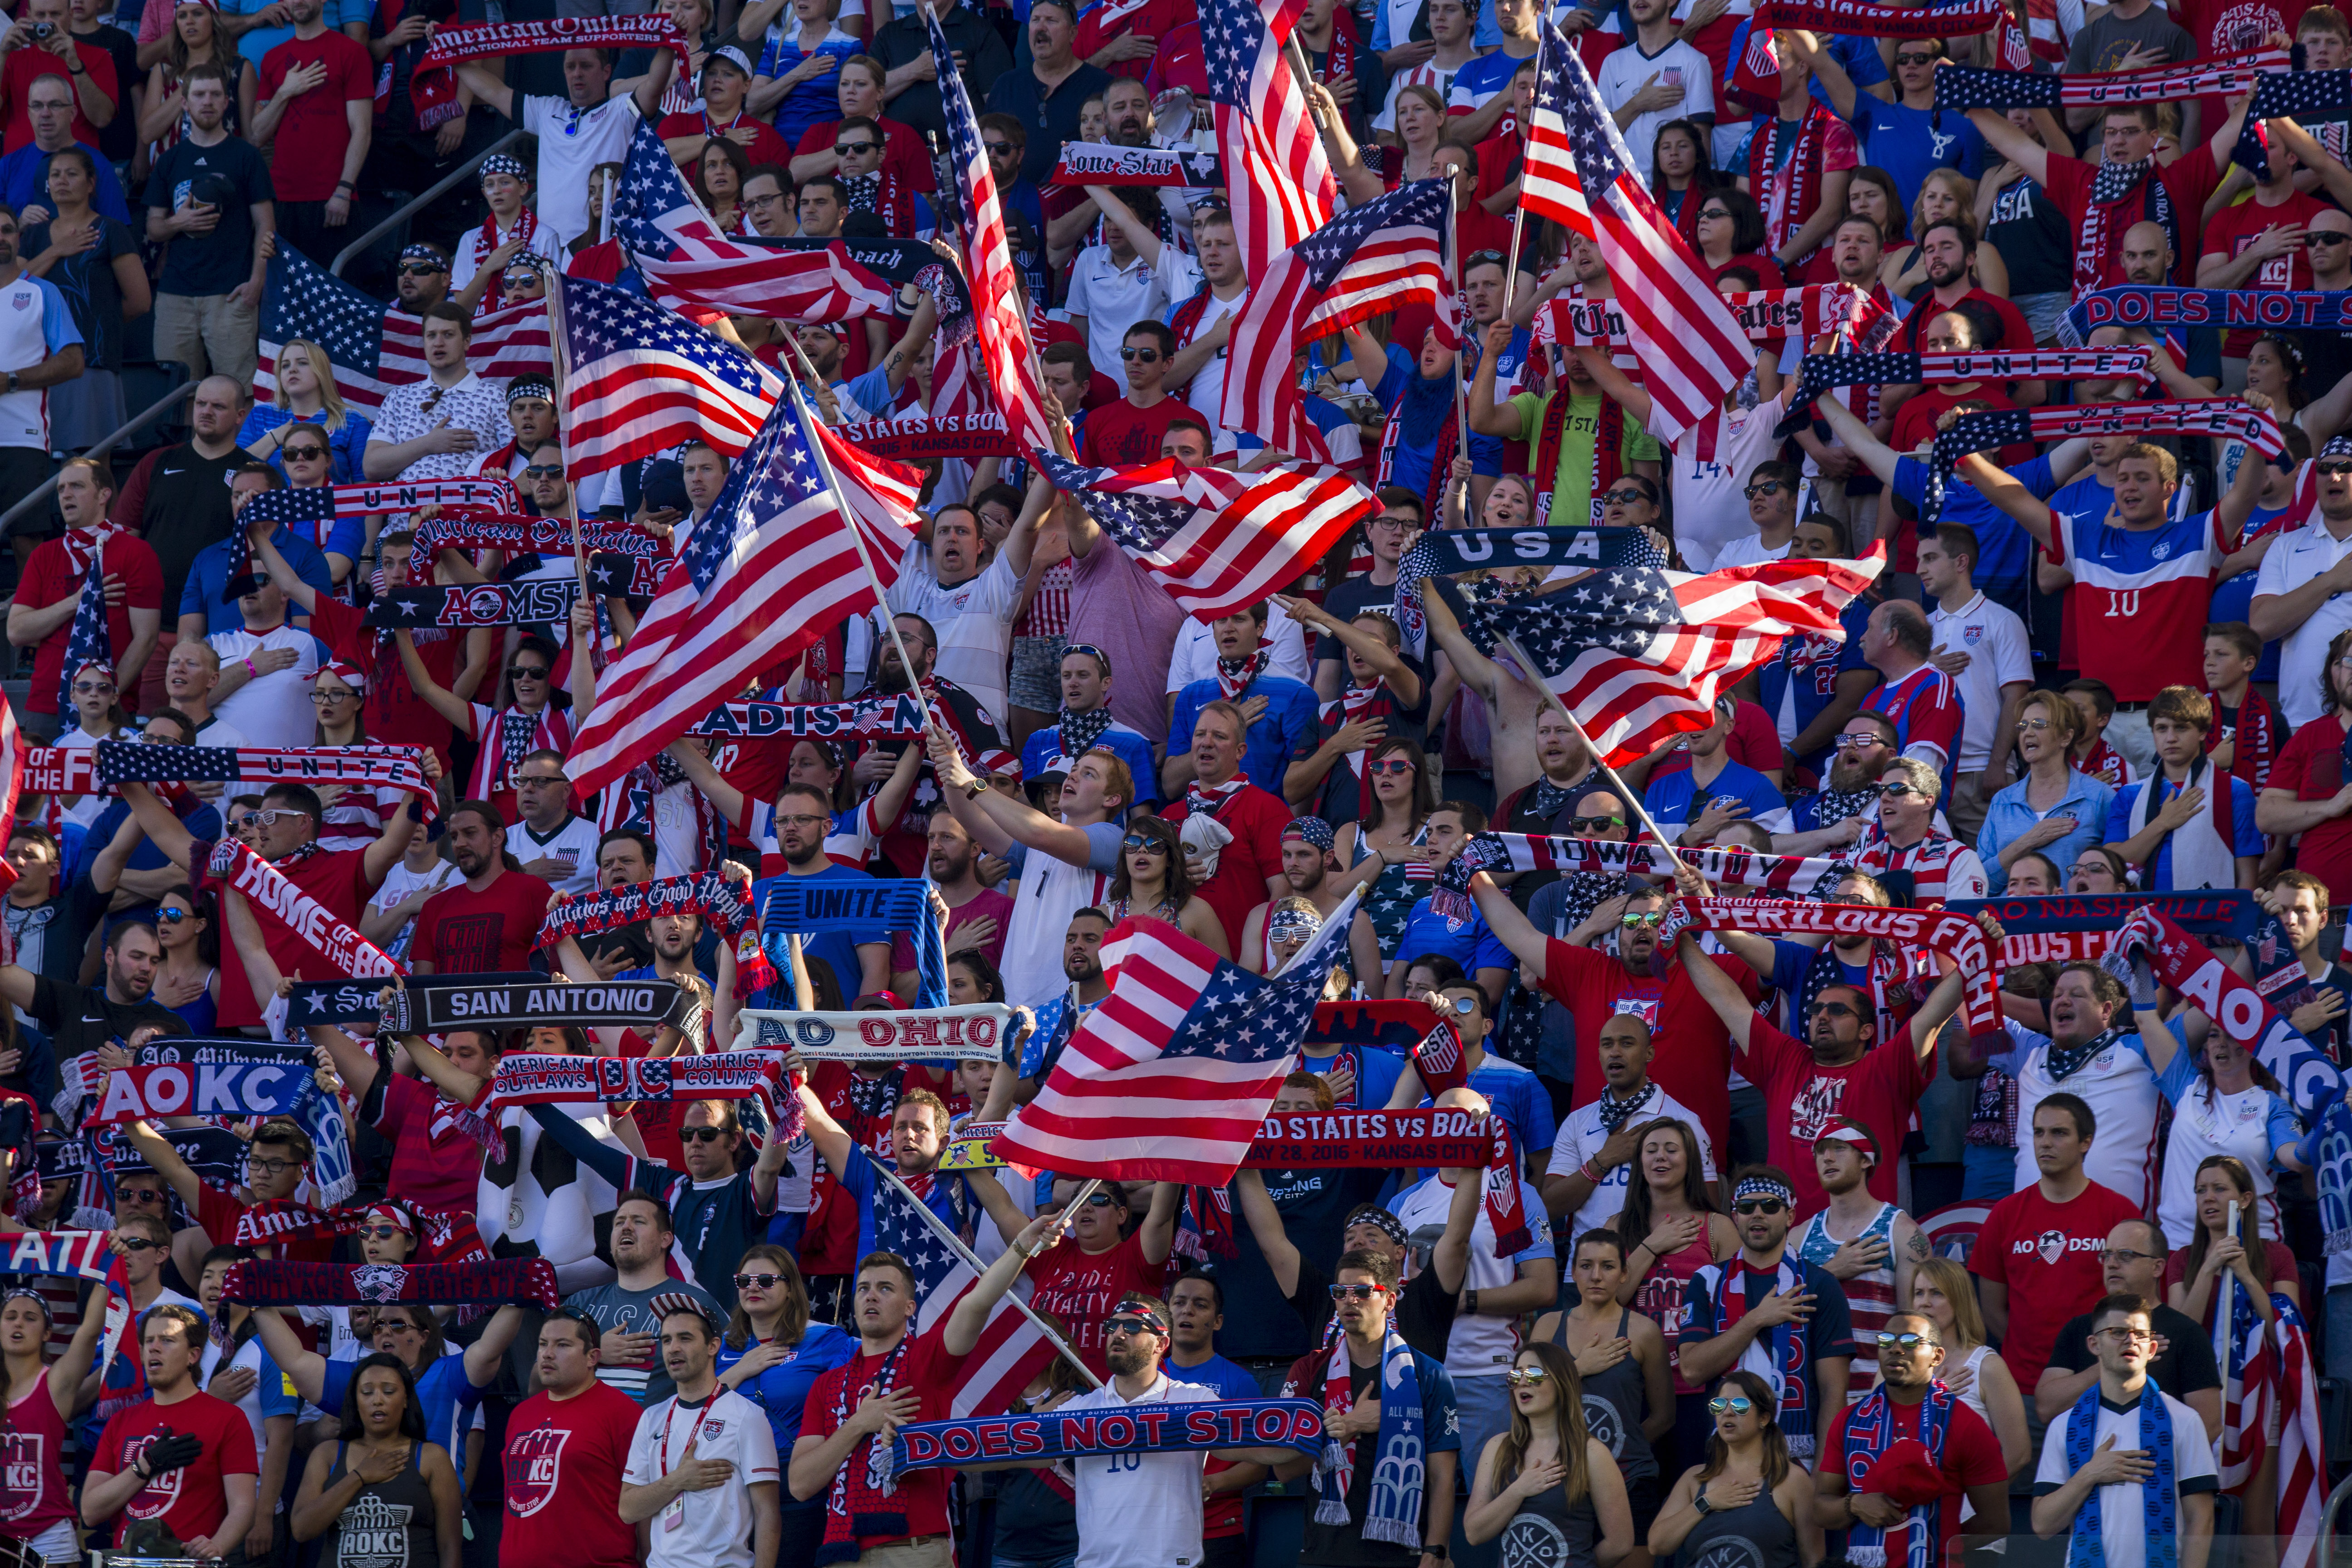 KANSAS CITY, KS - MAY 28: Fans sing the end of the Star Spangled Banner before the international friendly match between Bolivia and United States on May 28, 2016 at Children's Mercy Park in Kansas City, Kansas.  (Photo by Kyle Rivas/Getty Images)